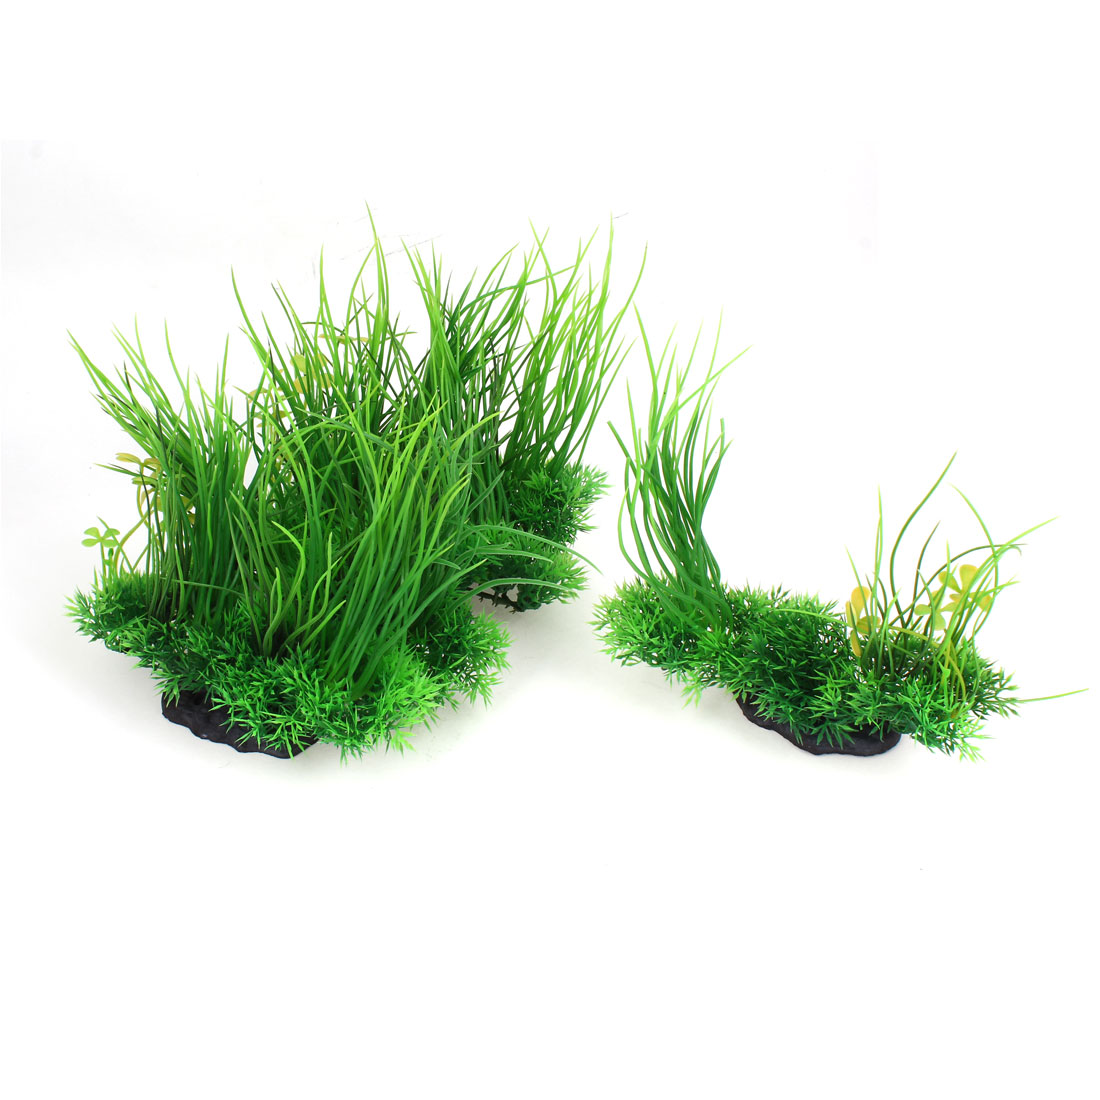 "Aquarium Flower Detail Manmade Plastic Aquatic Grass Green 7.5"" High 5 Pcs"